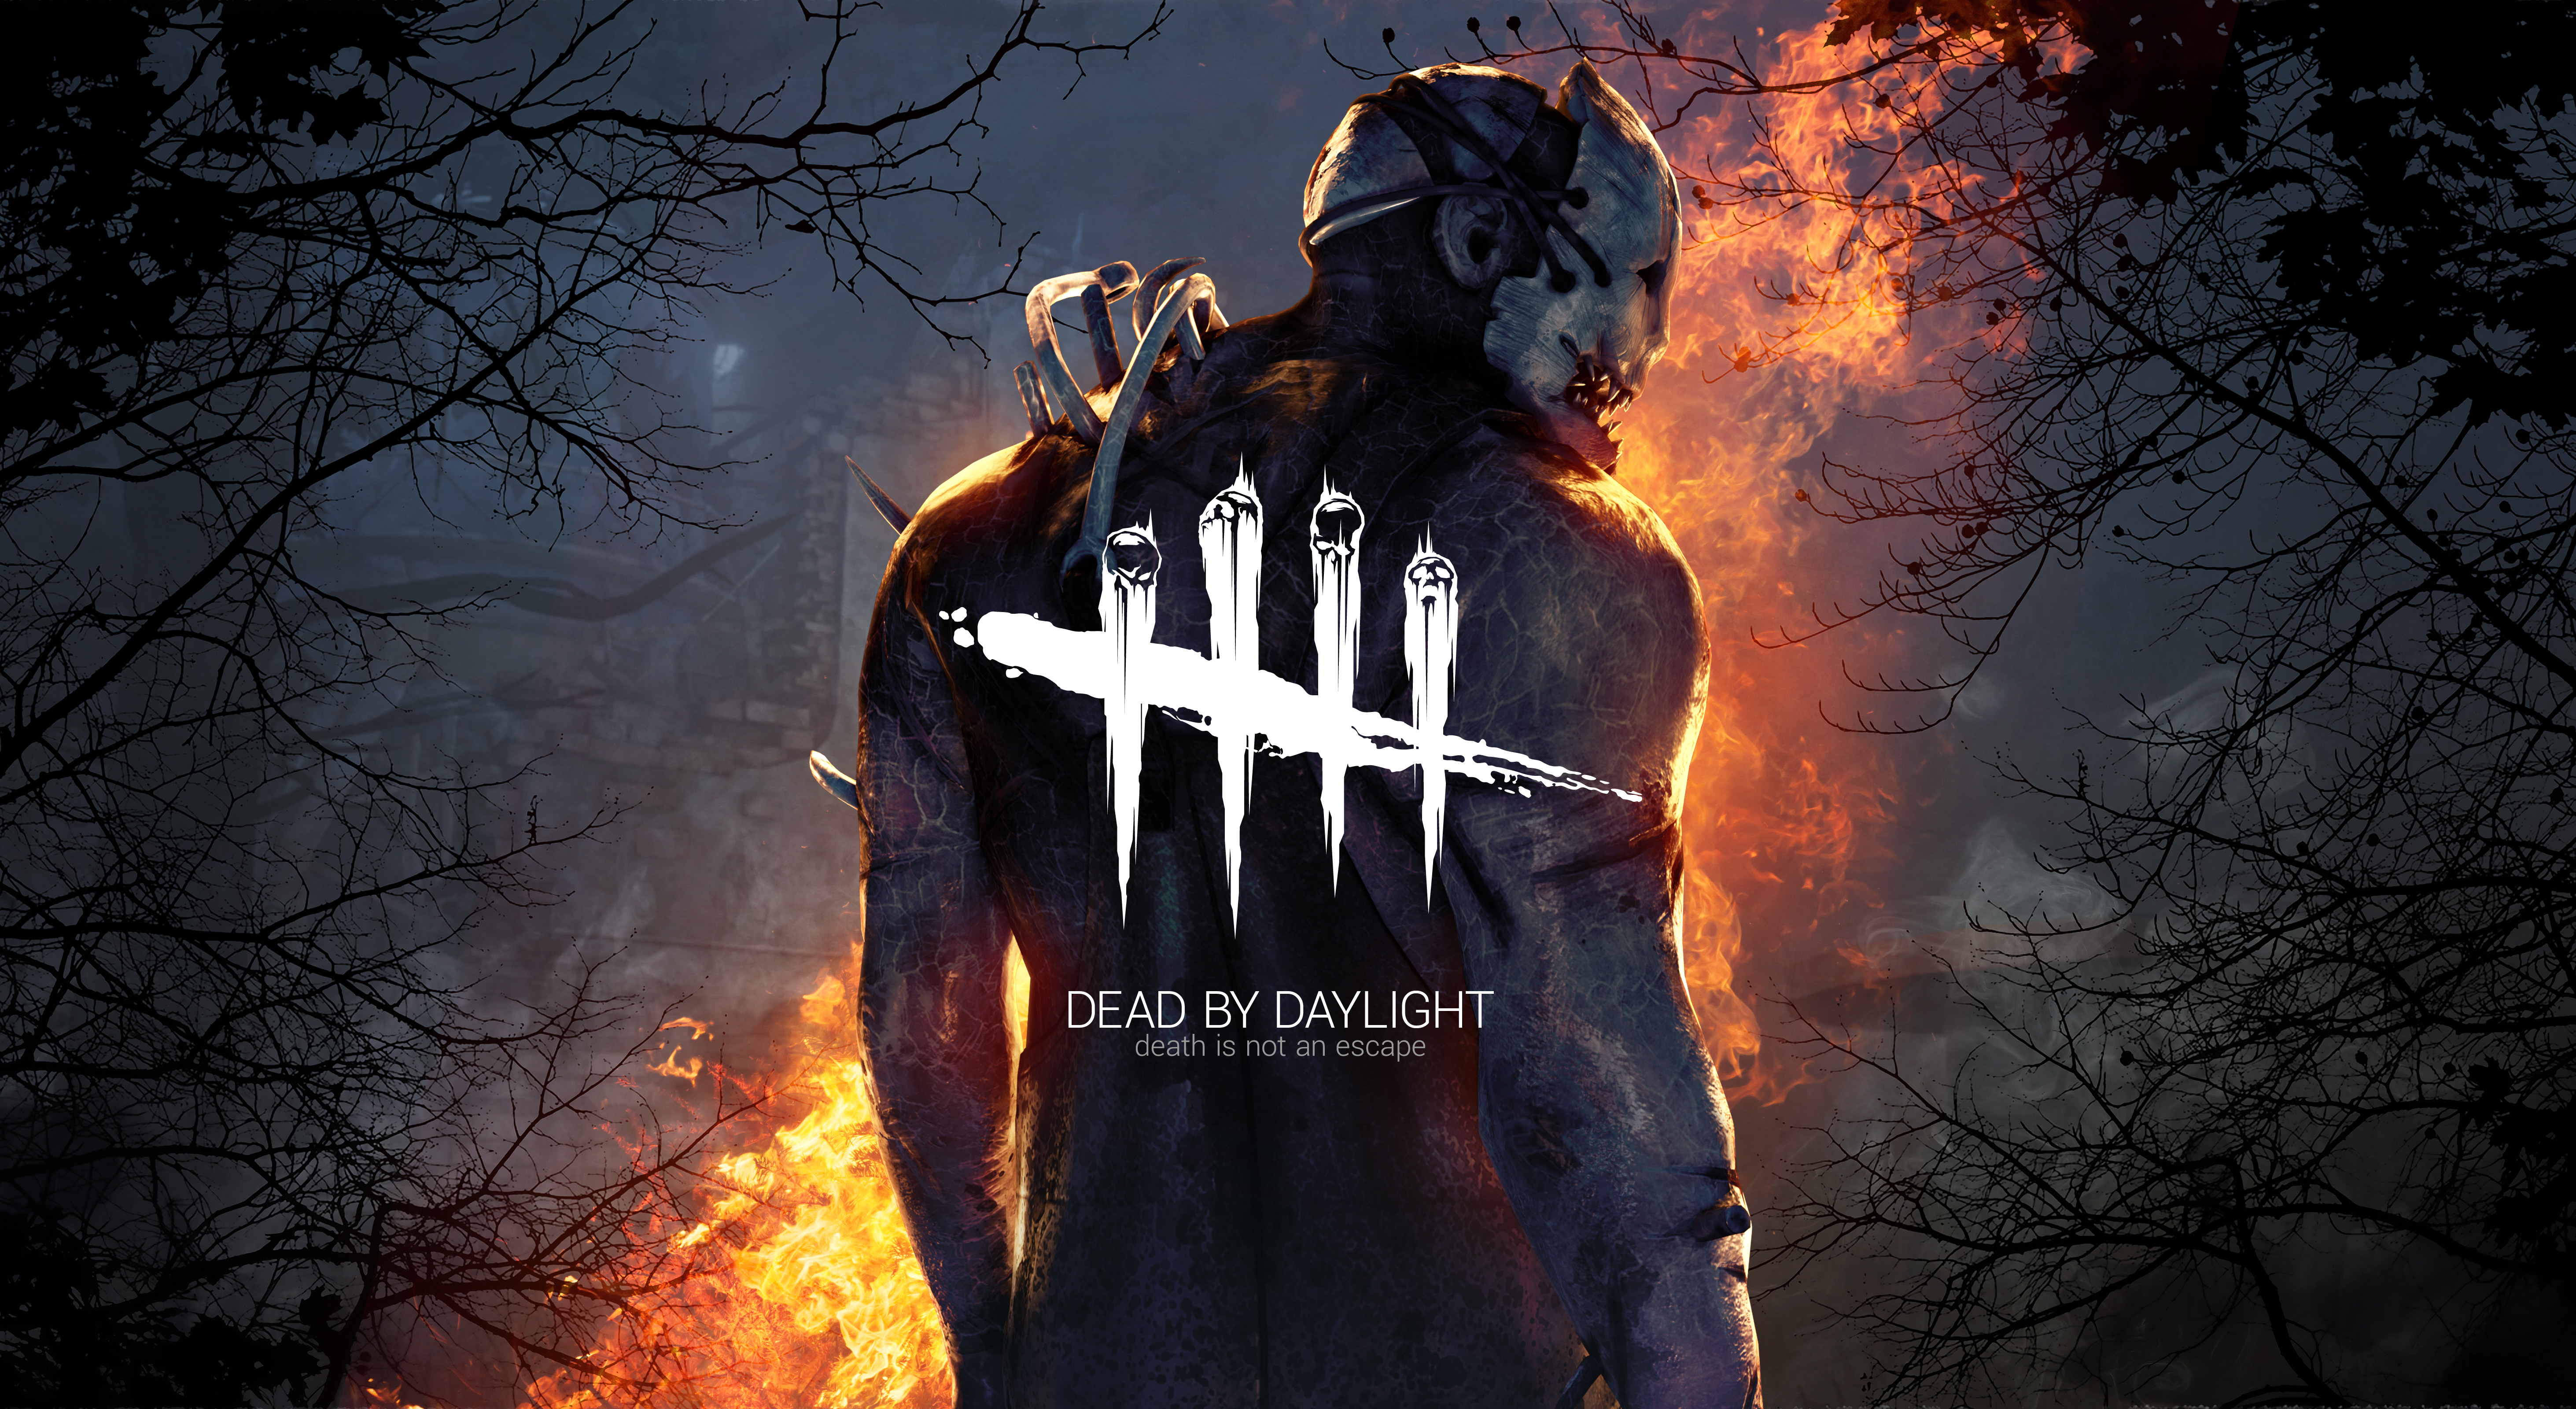 Anticipated Asymmetrical Horror Game Dead by Daylight out